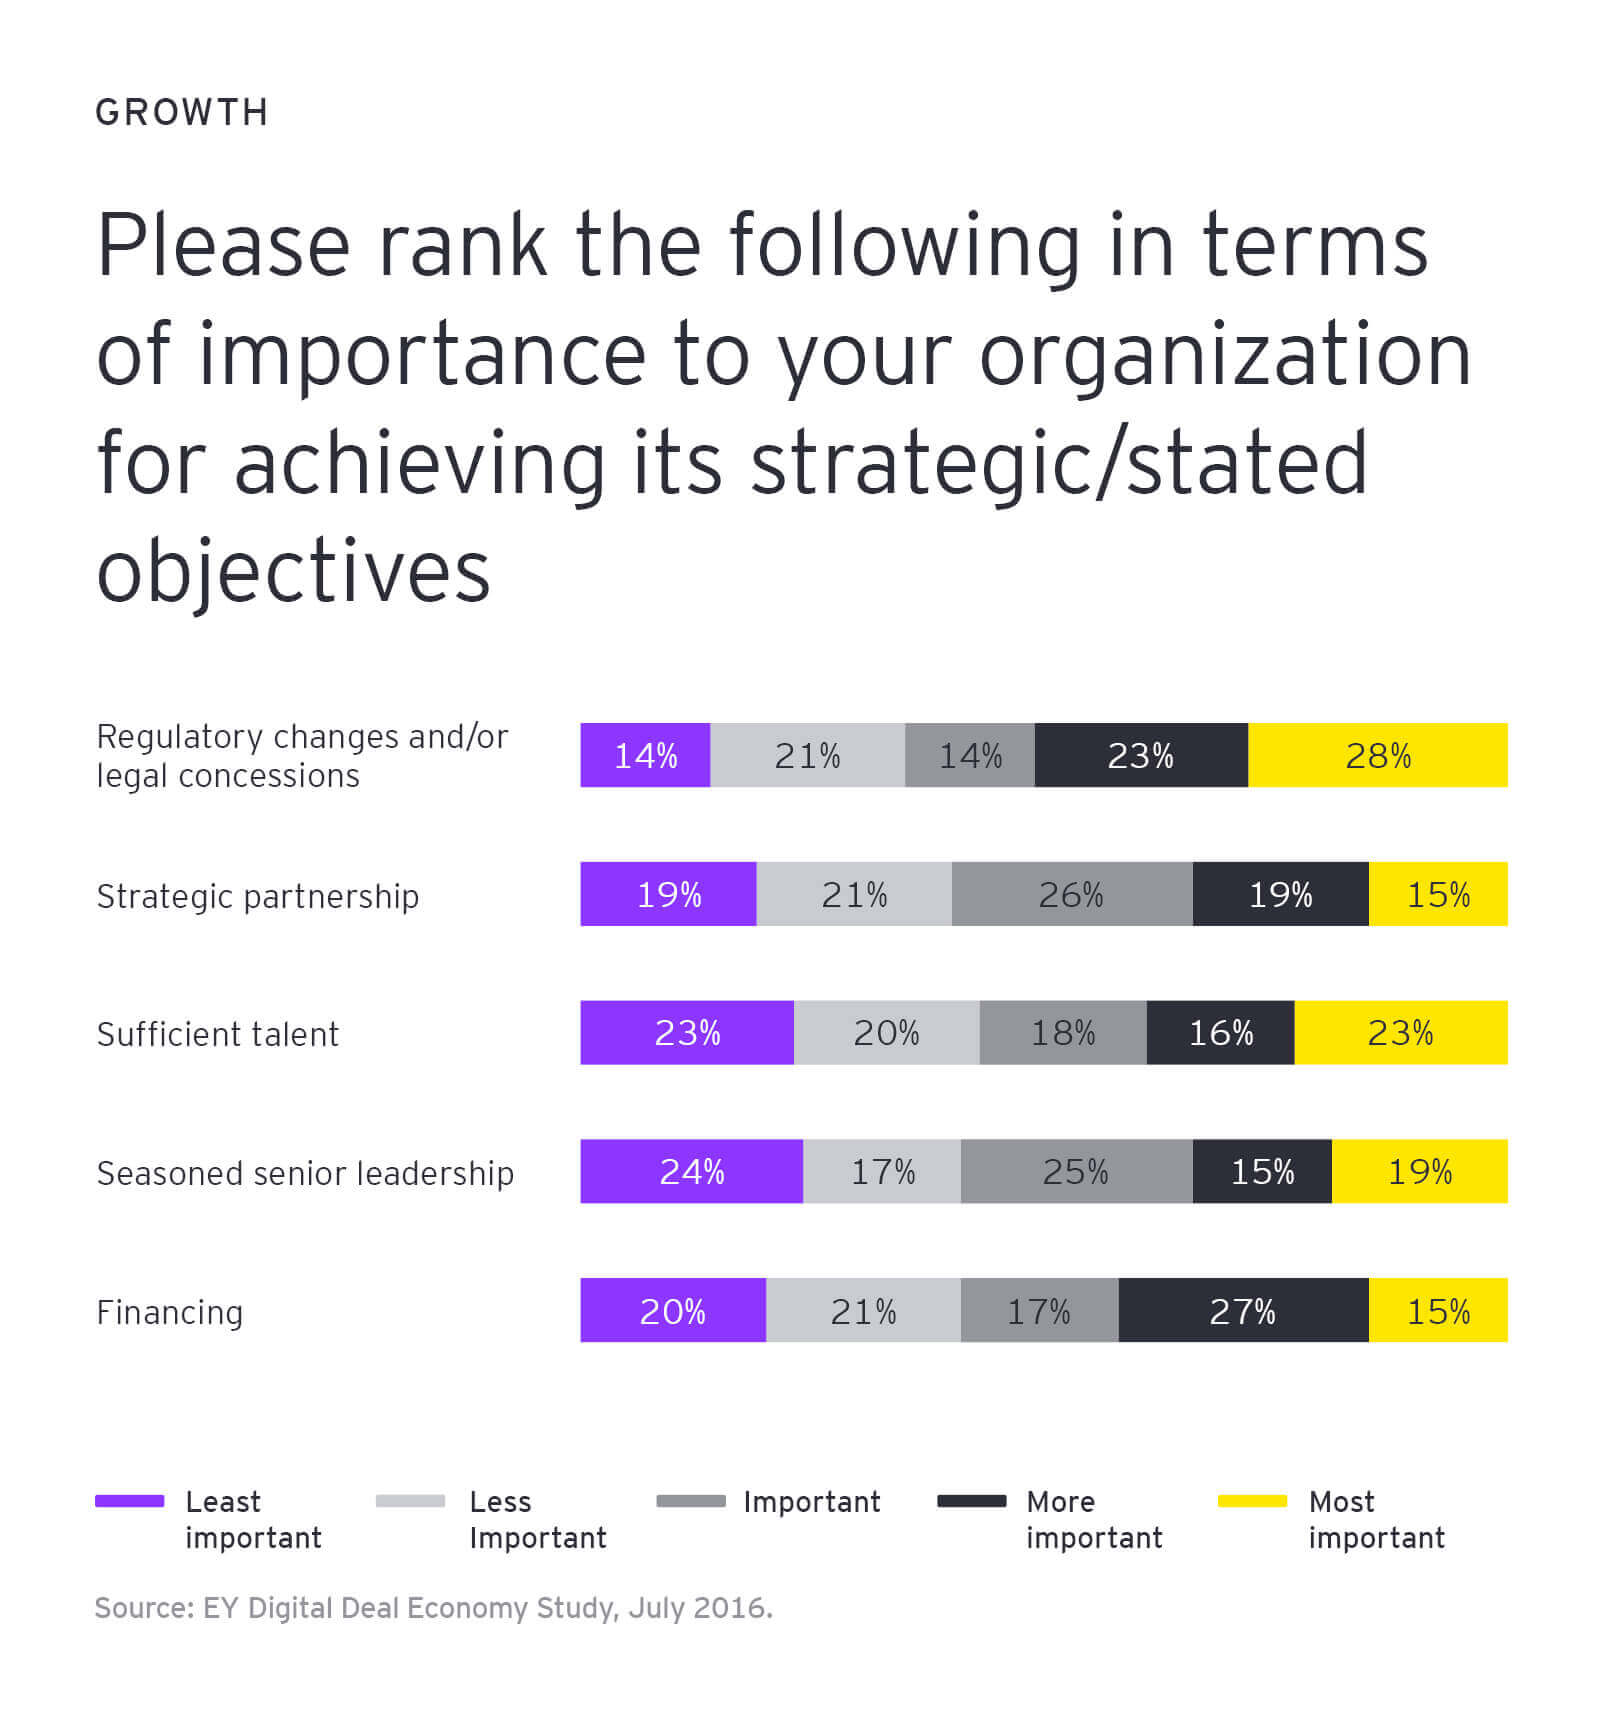 Please rank the following in terms of importance to your organization for acheving ists strategic/stated objectives